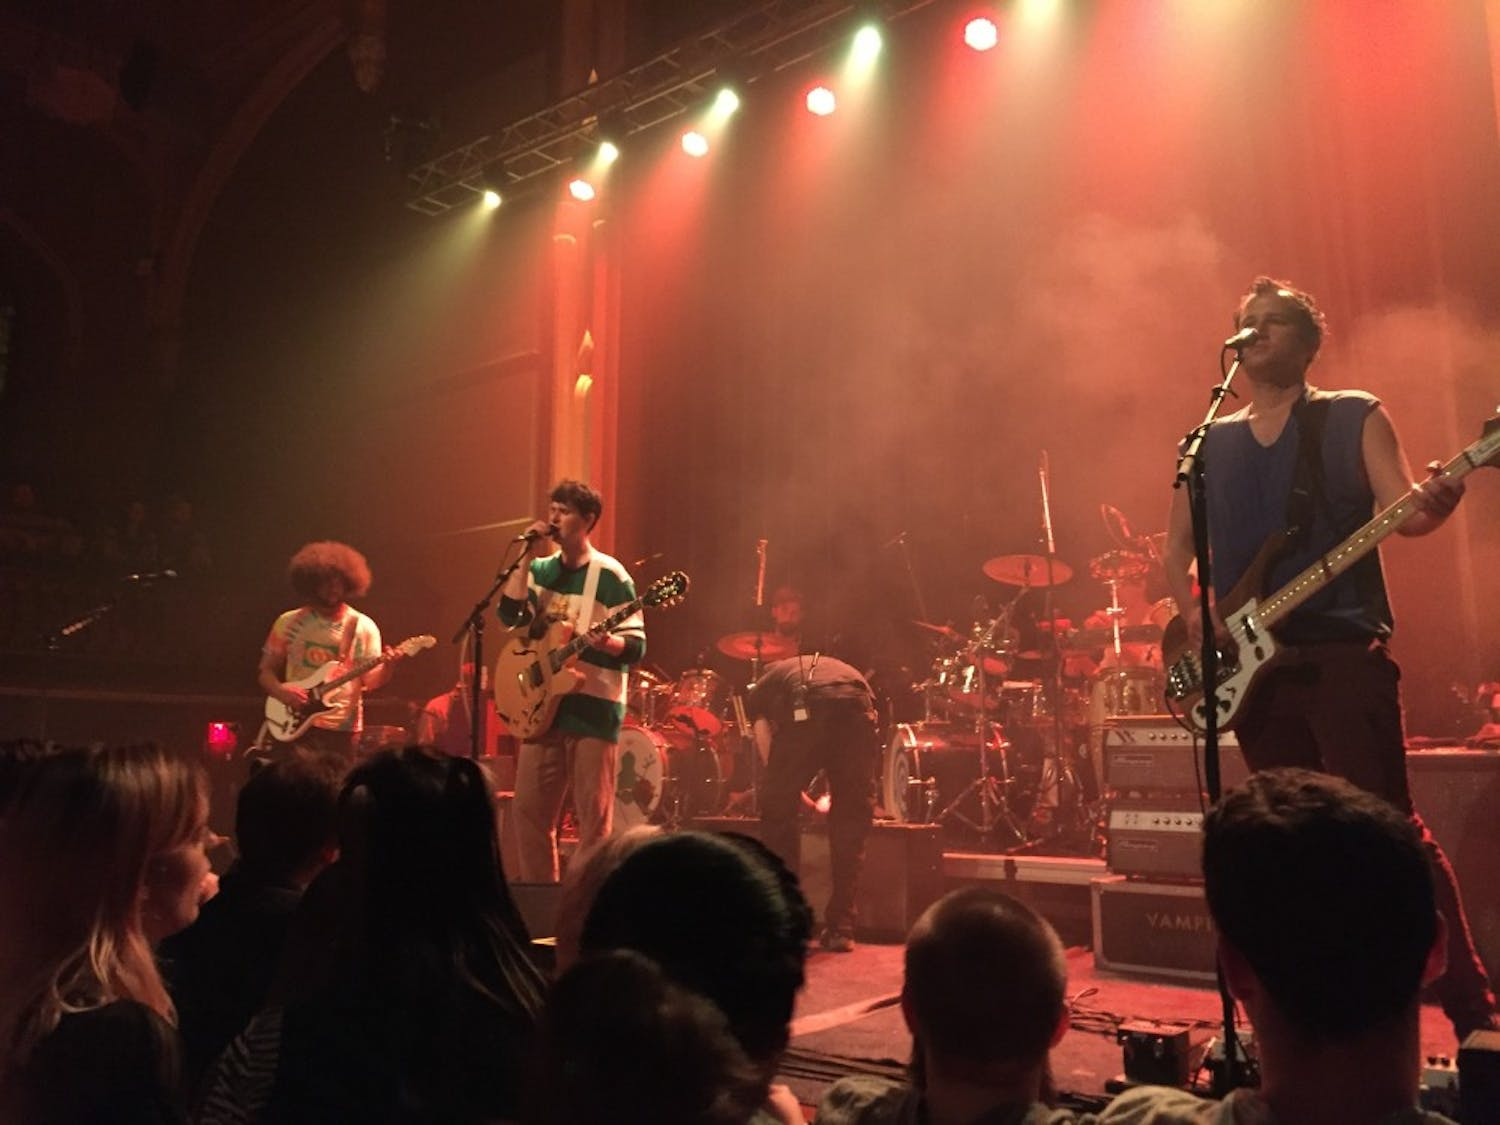 Vampire Weekend performs at Asbury Hall. The band mixed old hits with new cuts to ensure an enjoyable night.